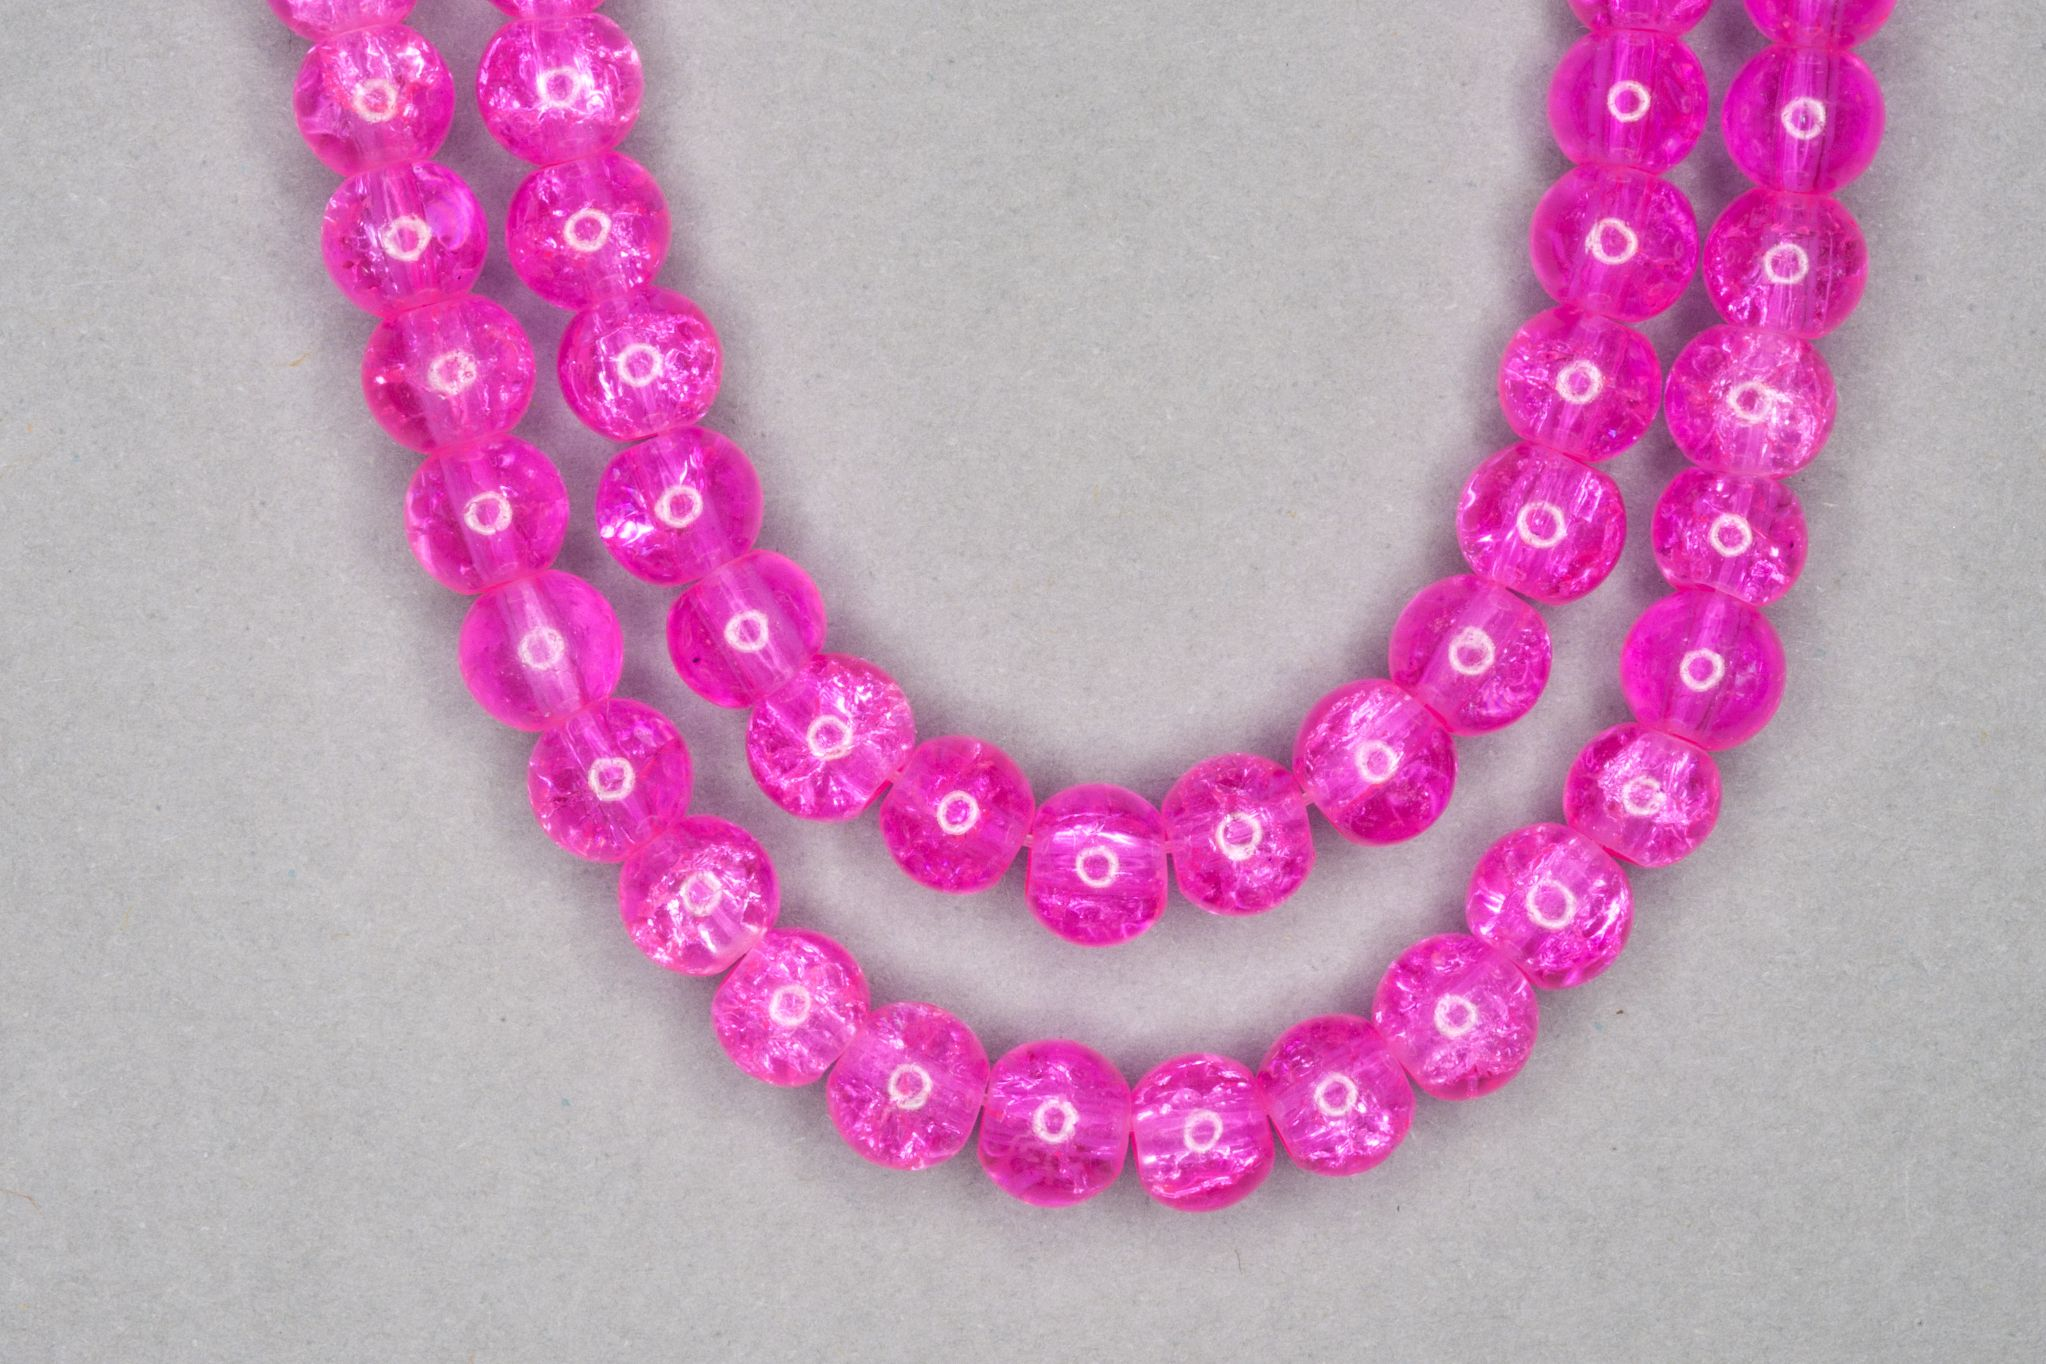 Neon Pink Crackle Glass Beads